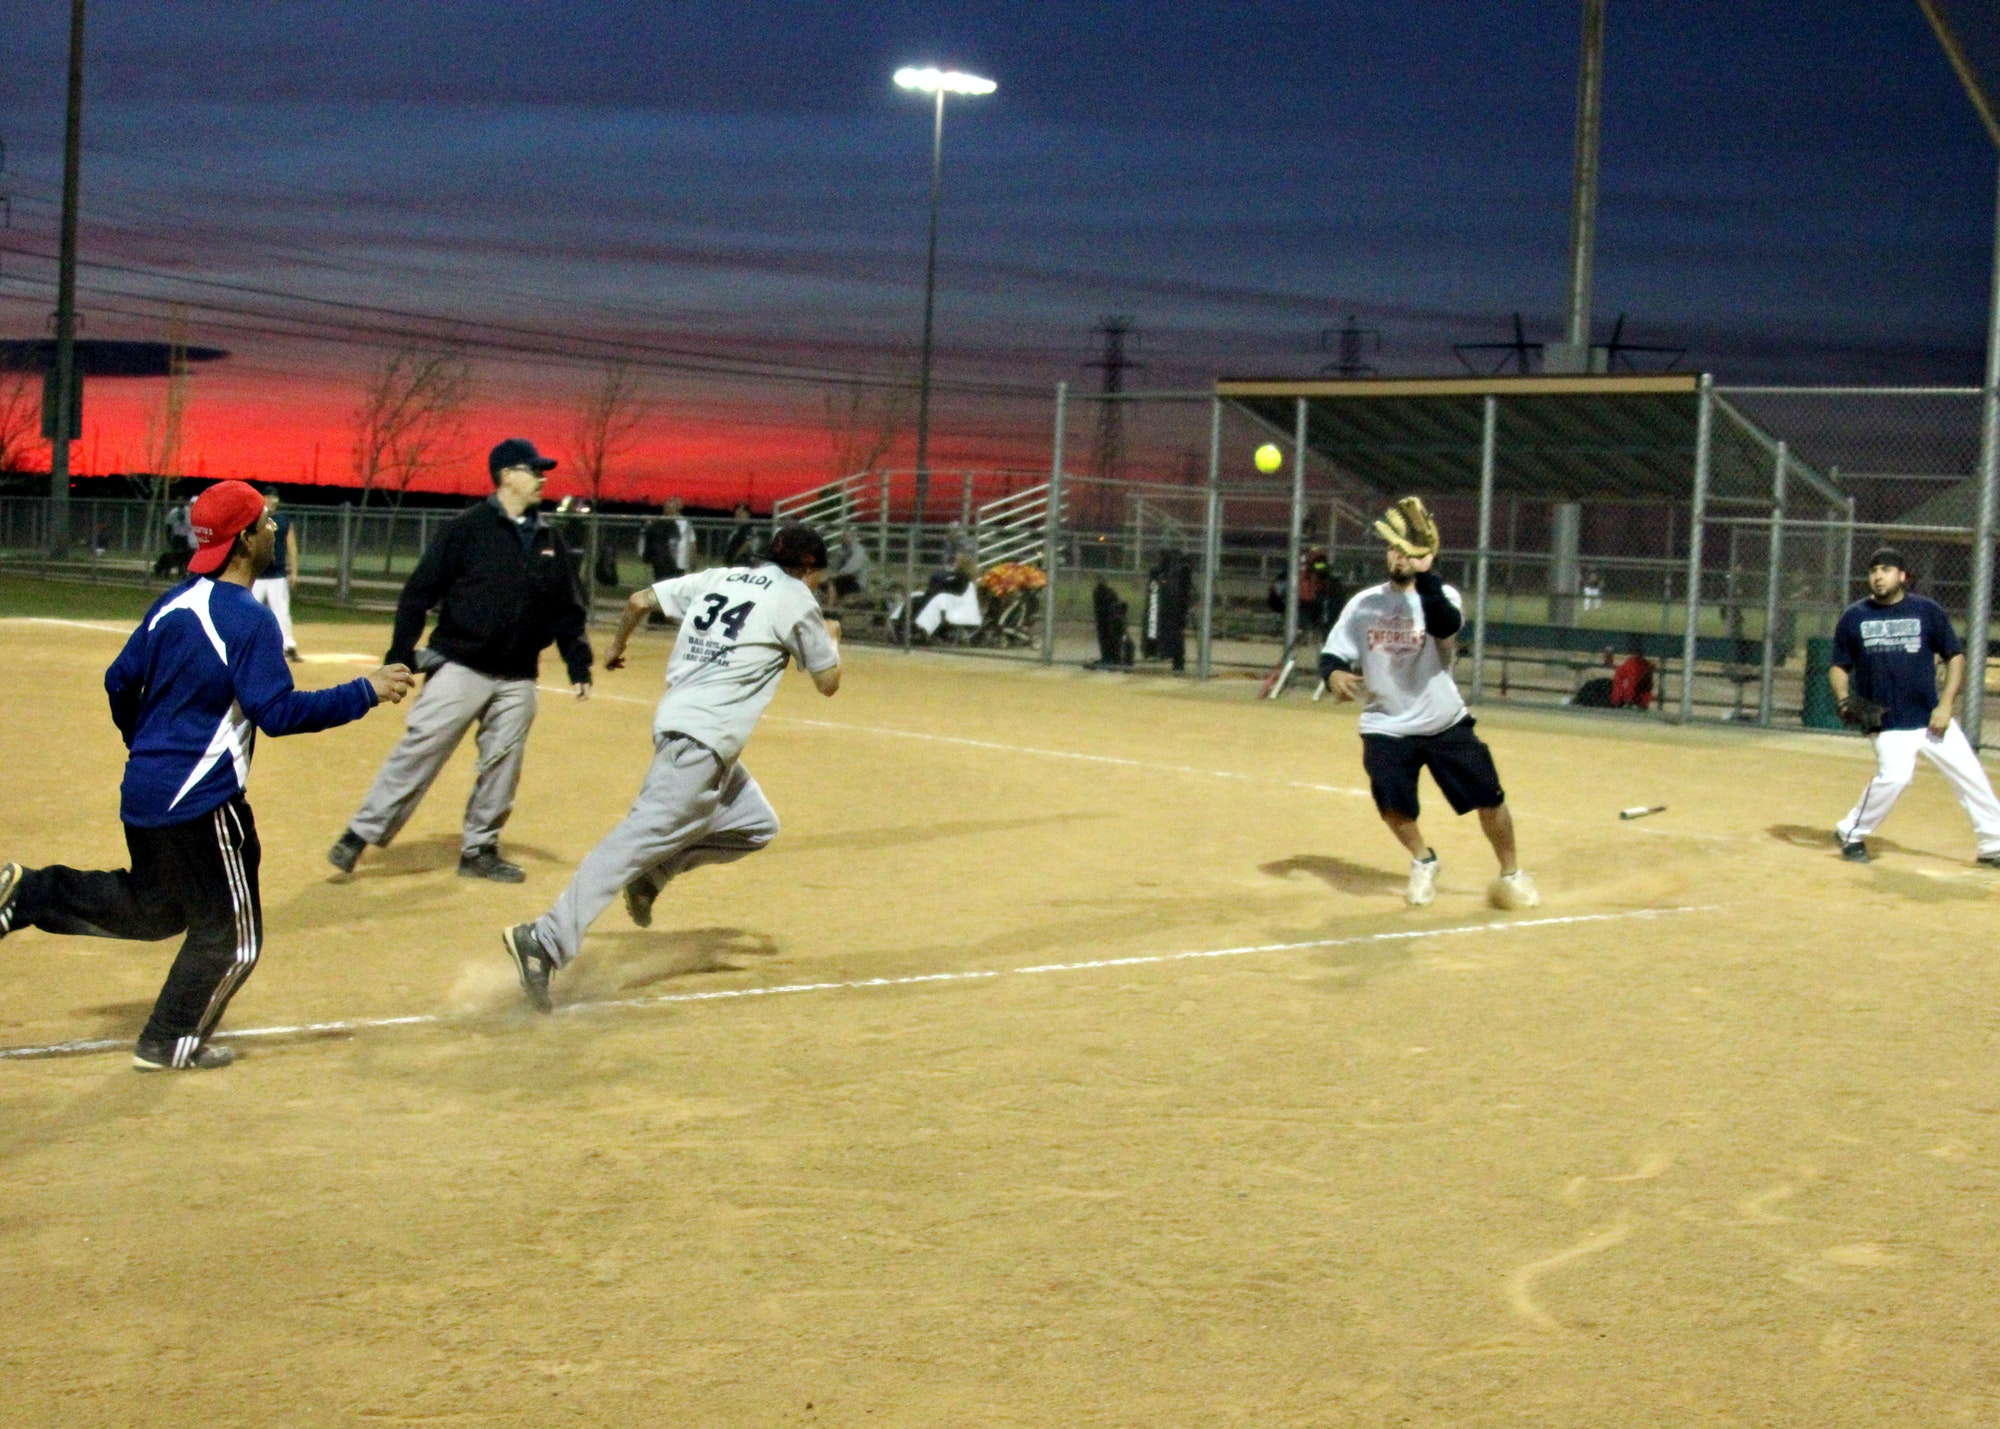 Adult softball game in action